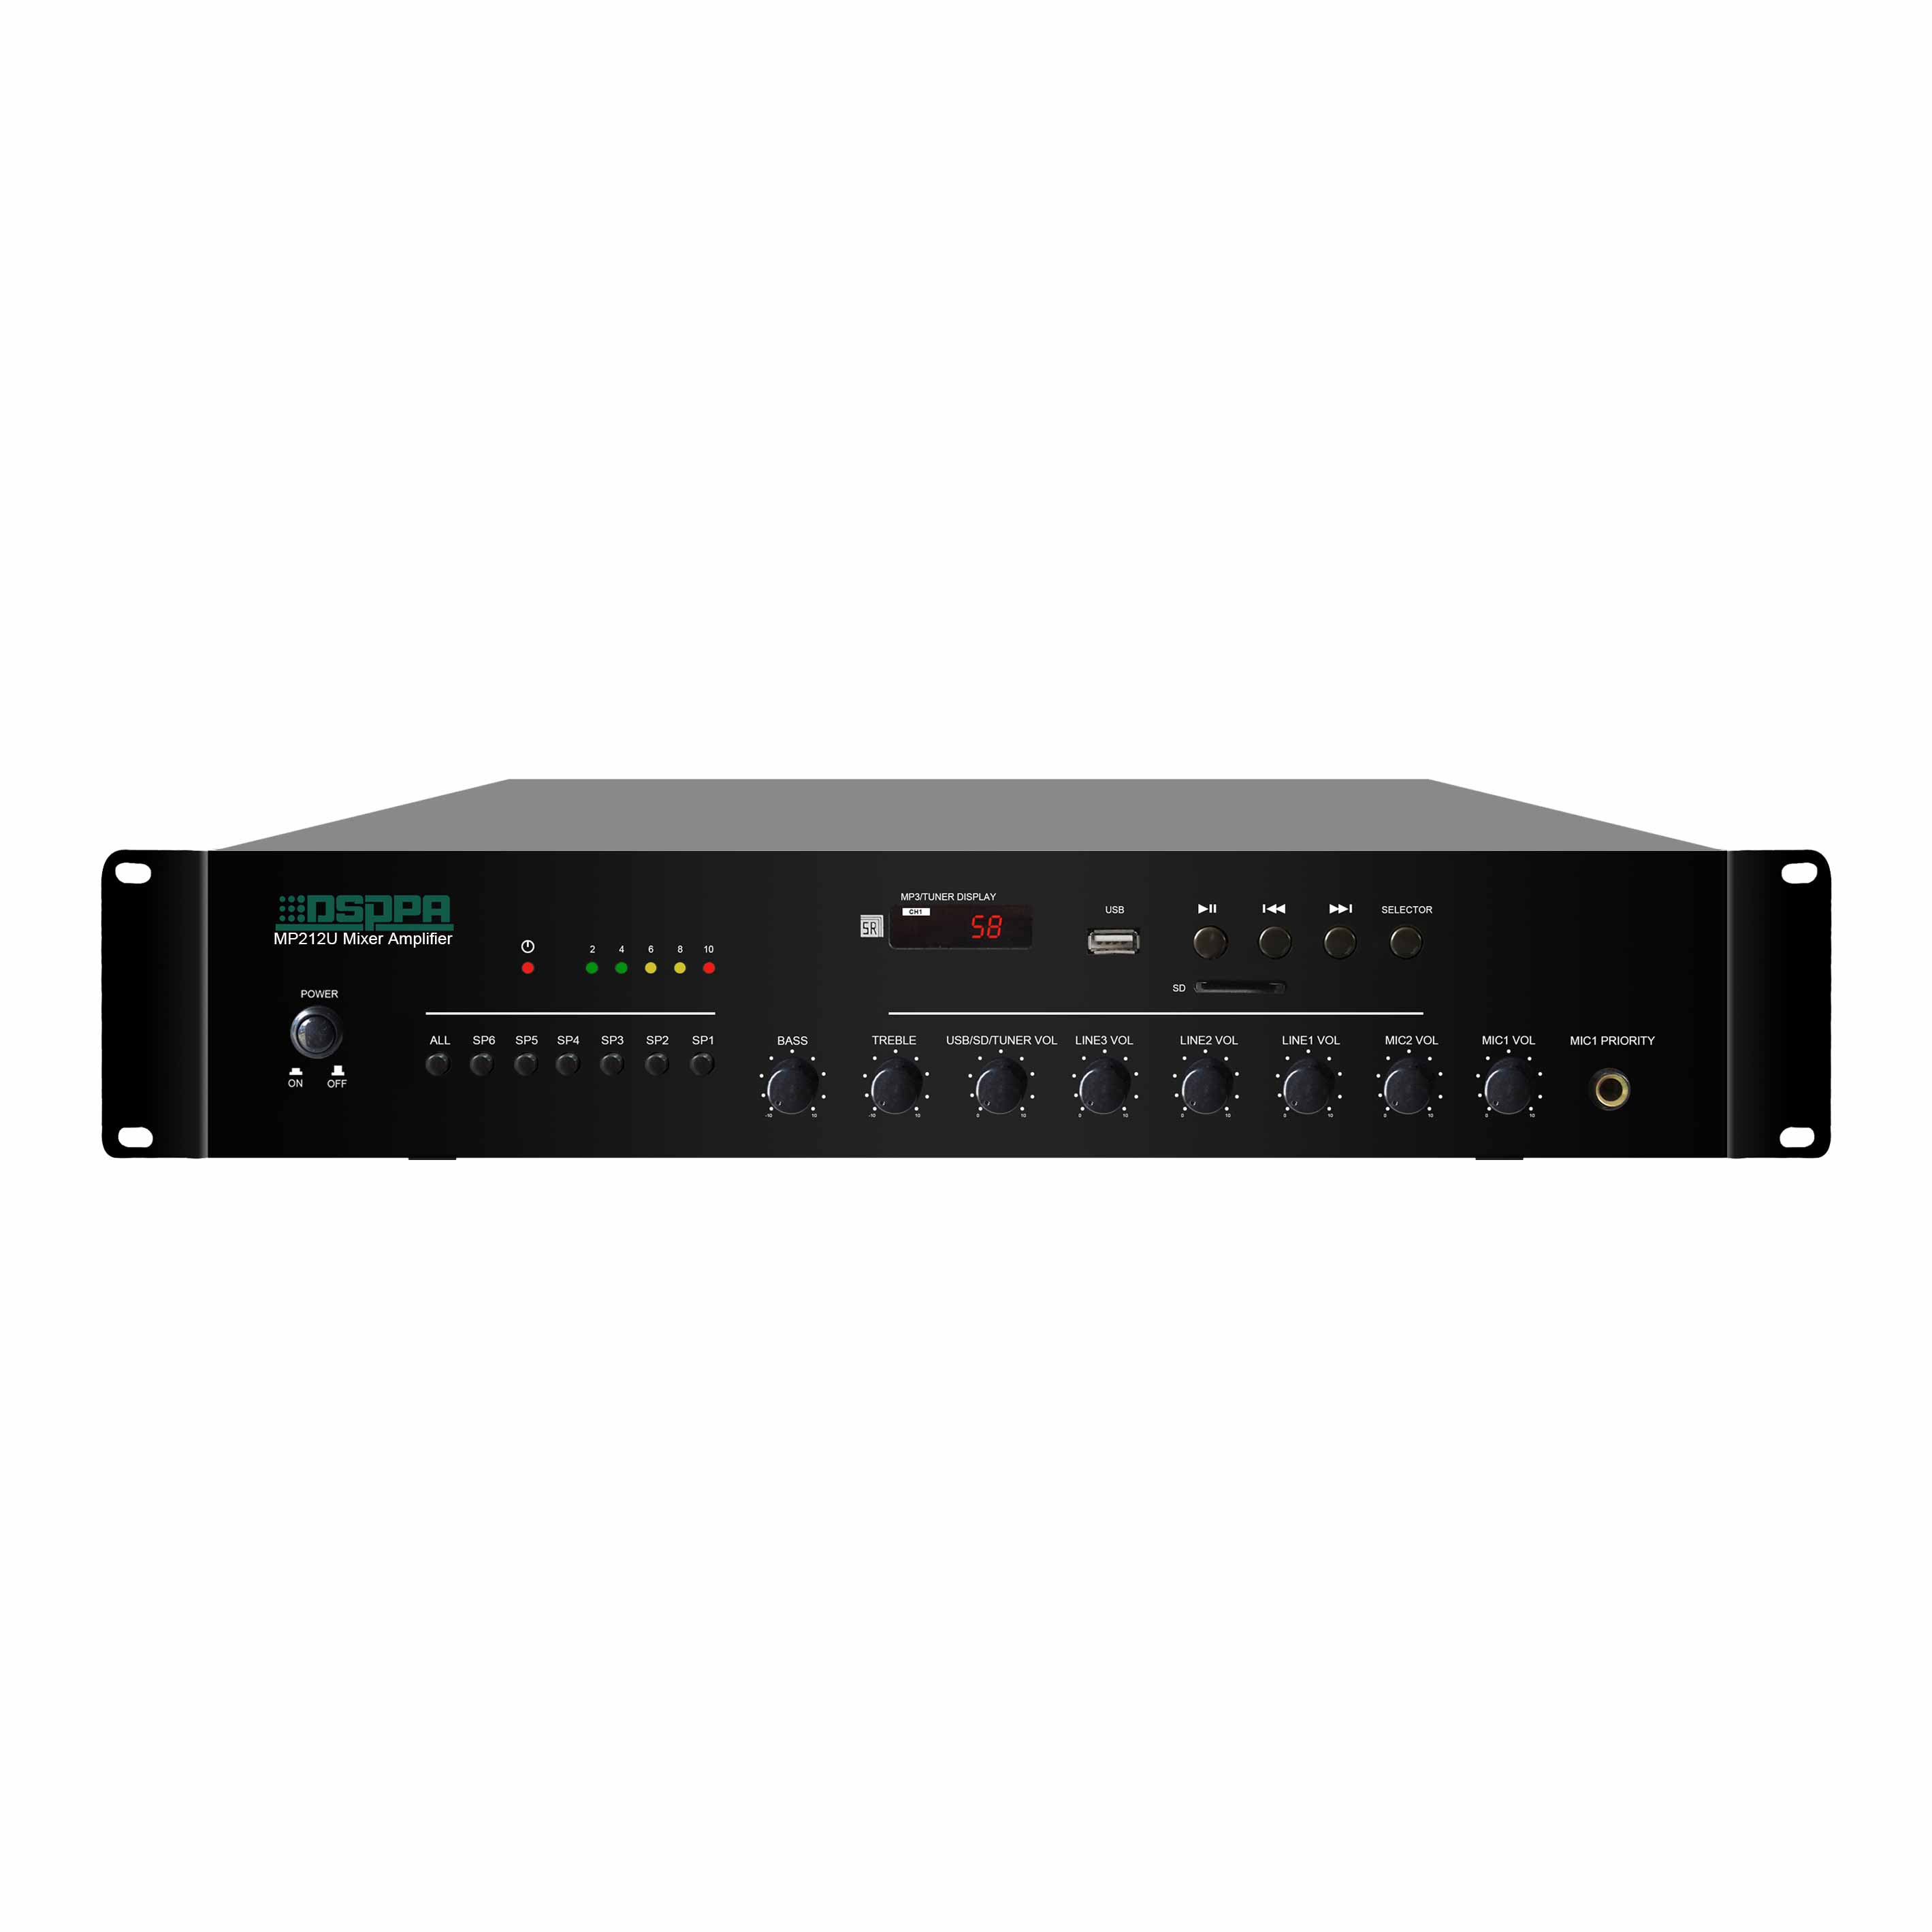 MP212U 120W 6 Zones USB/SD/FM Mixer Amplifier